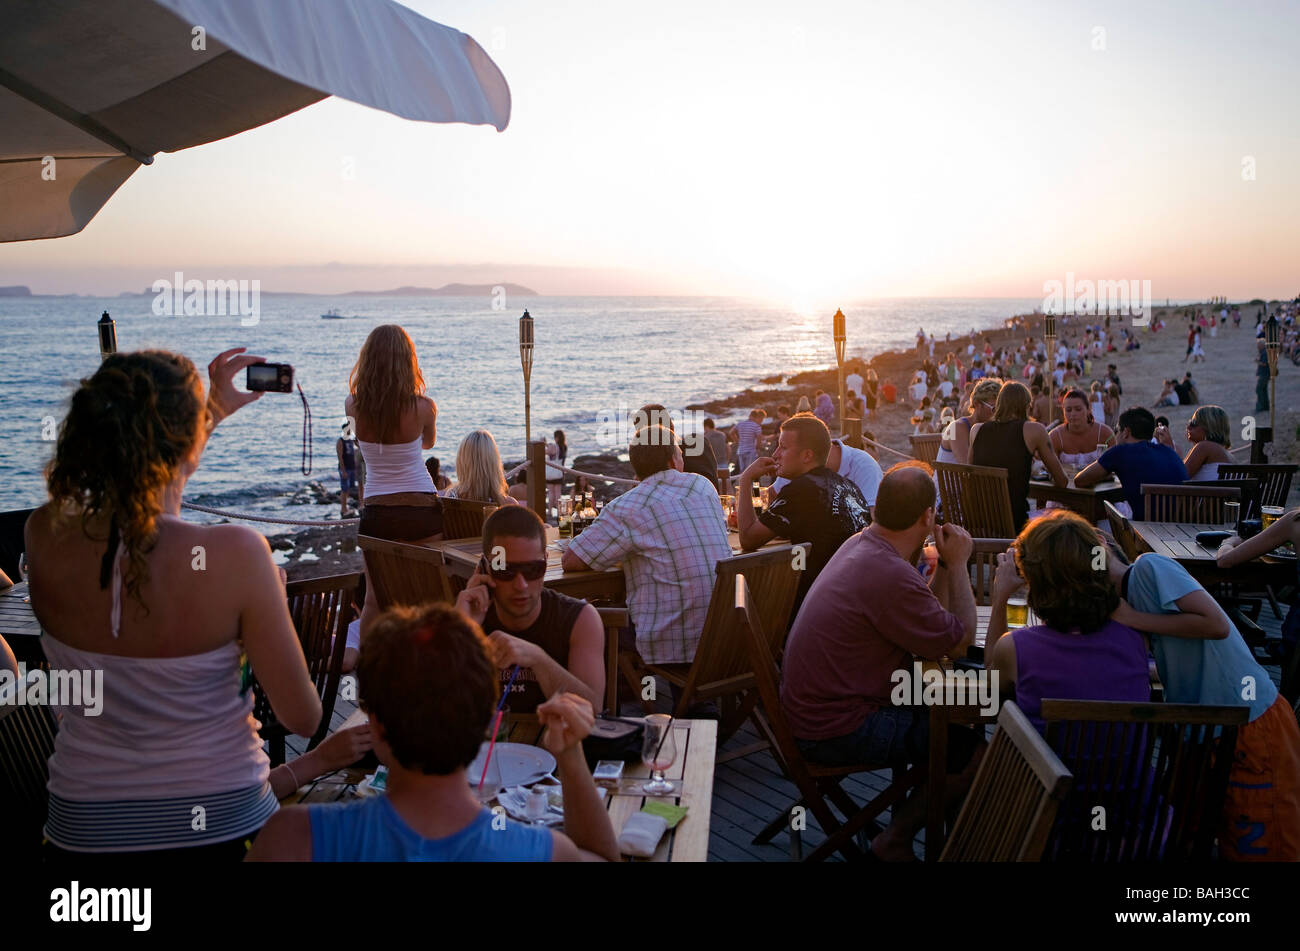 Spain, Balearic Islands, Ibiza island, Sant Antoni, every day at sunset, young people meet in front of the Cafe - Stock Image